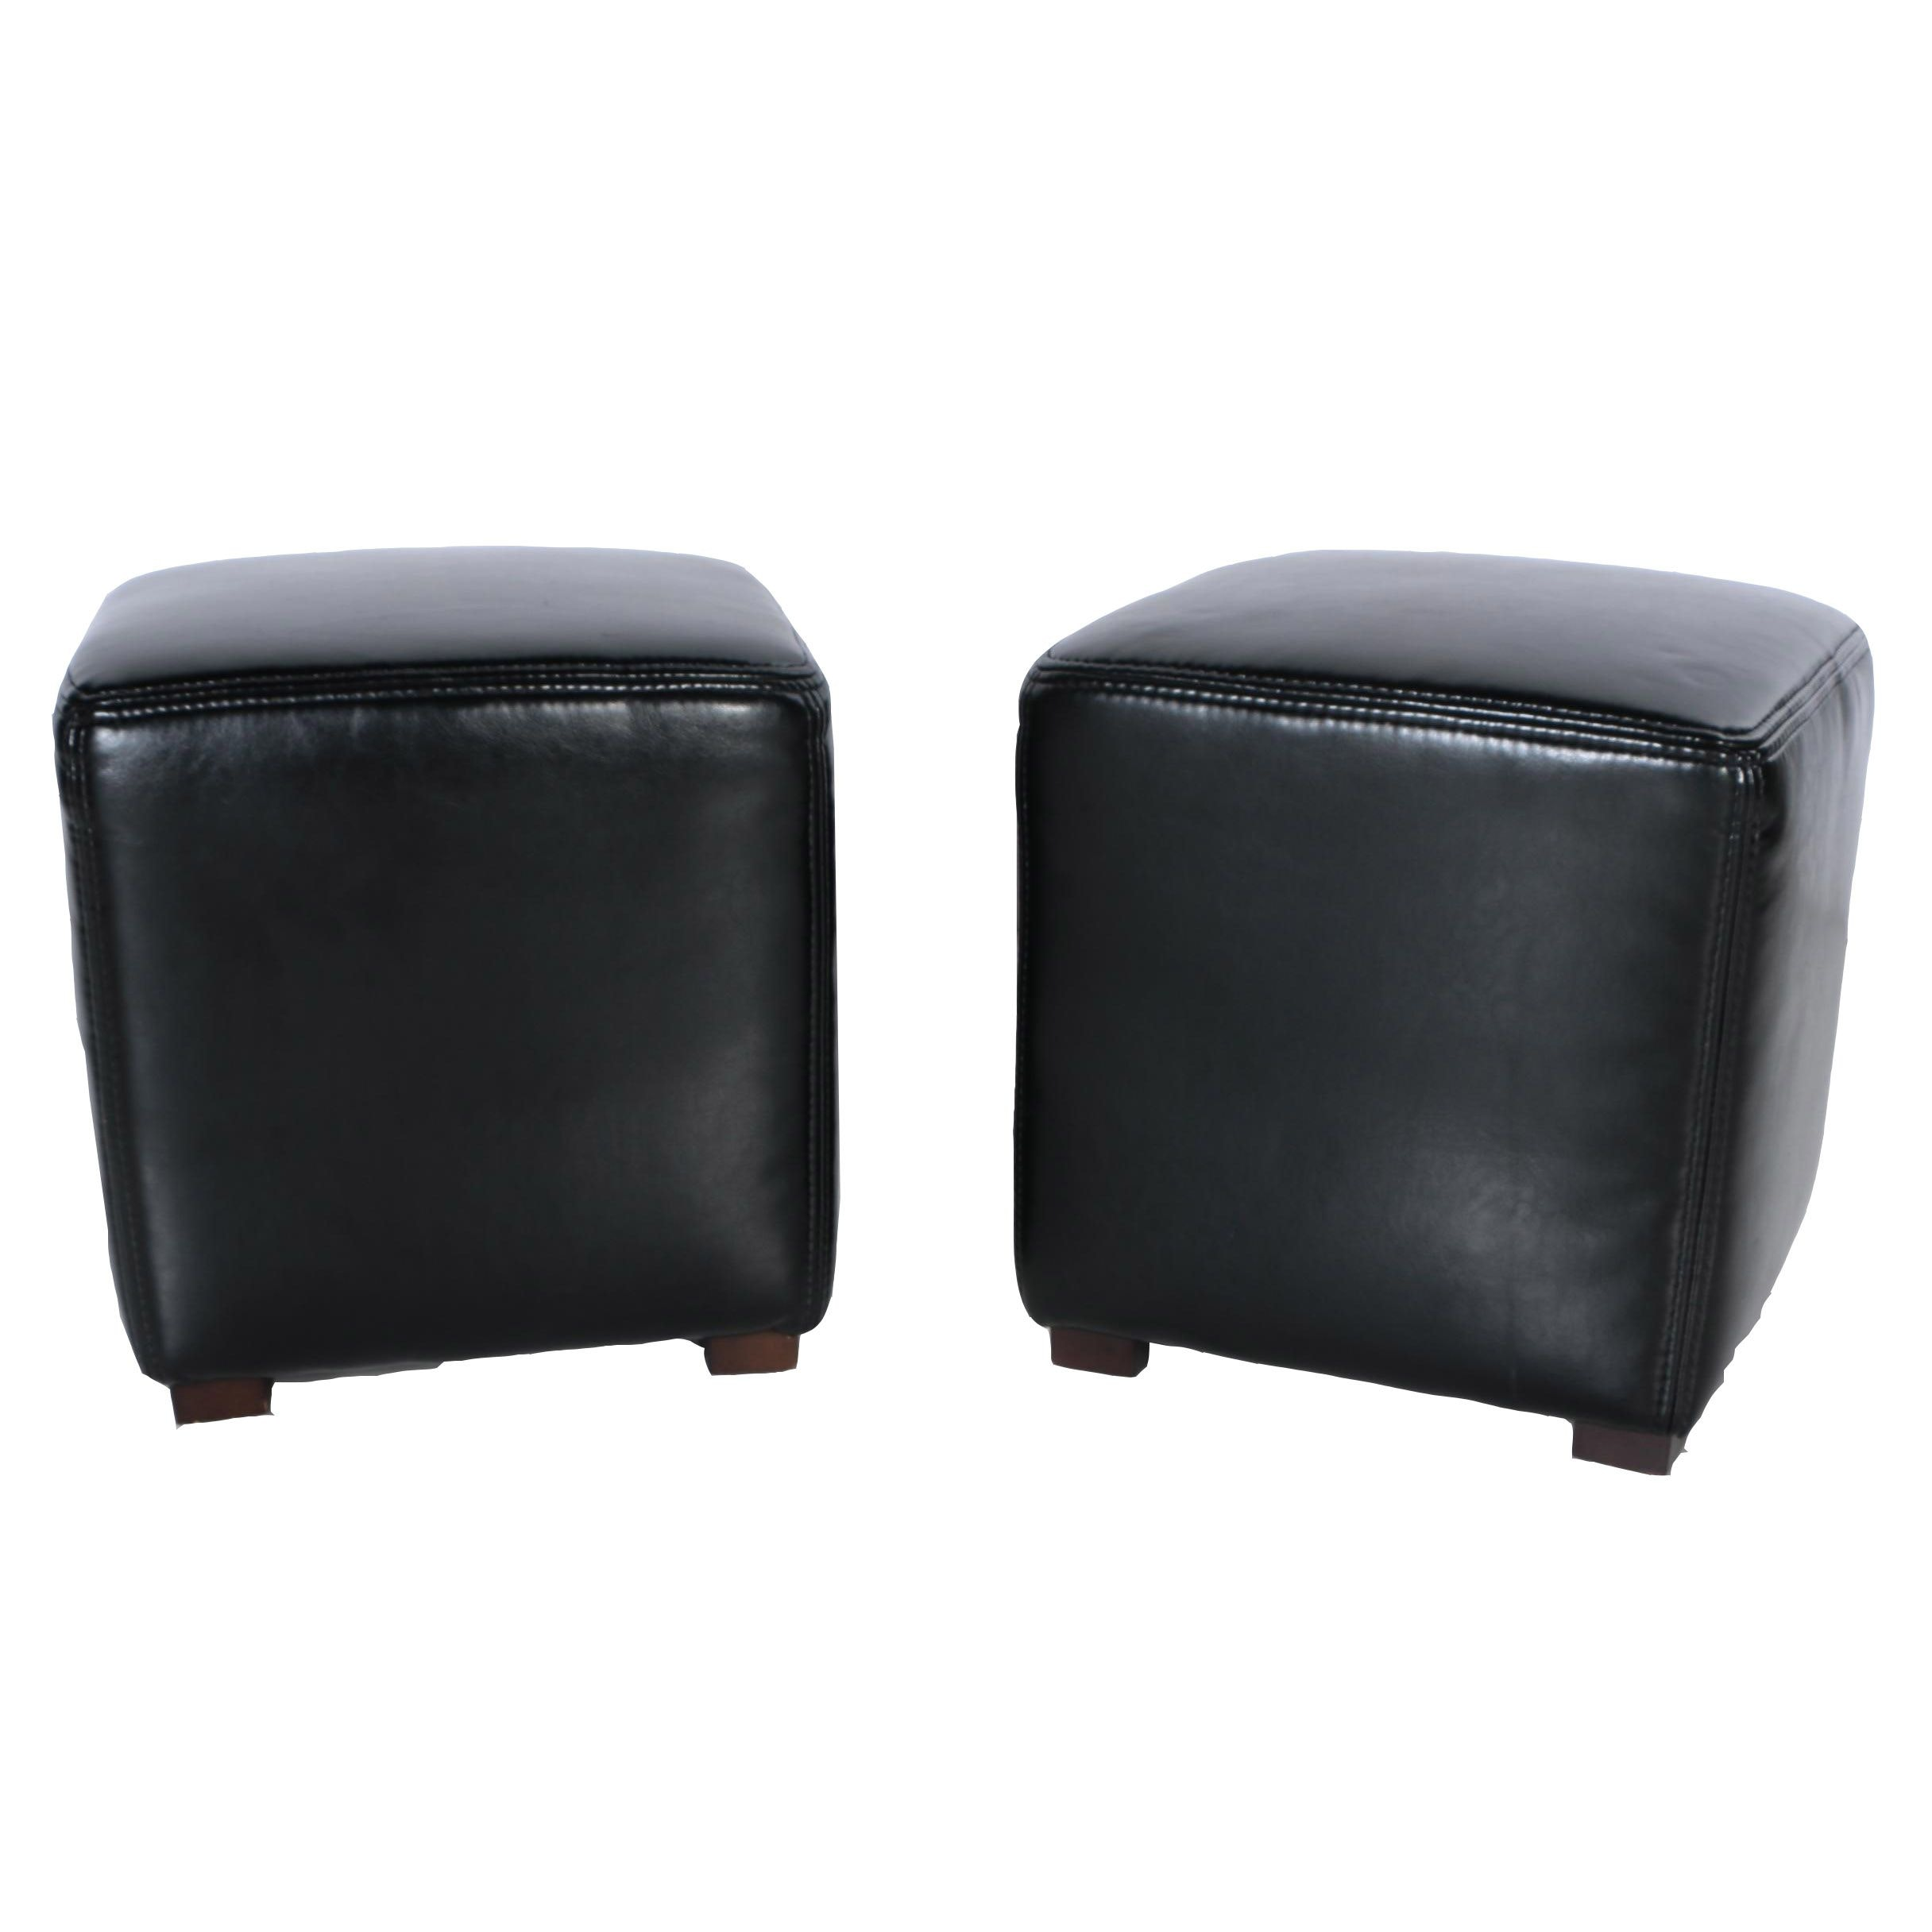 Black Leather Ottomans by Zhe Jiang Furniture